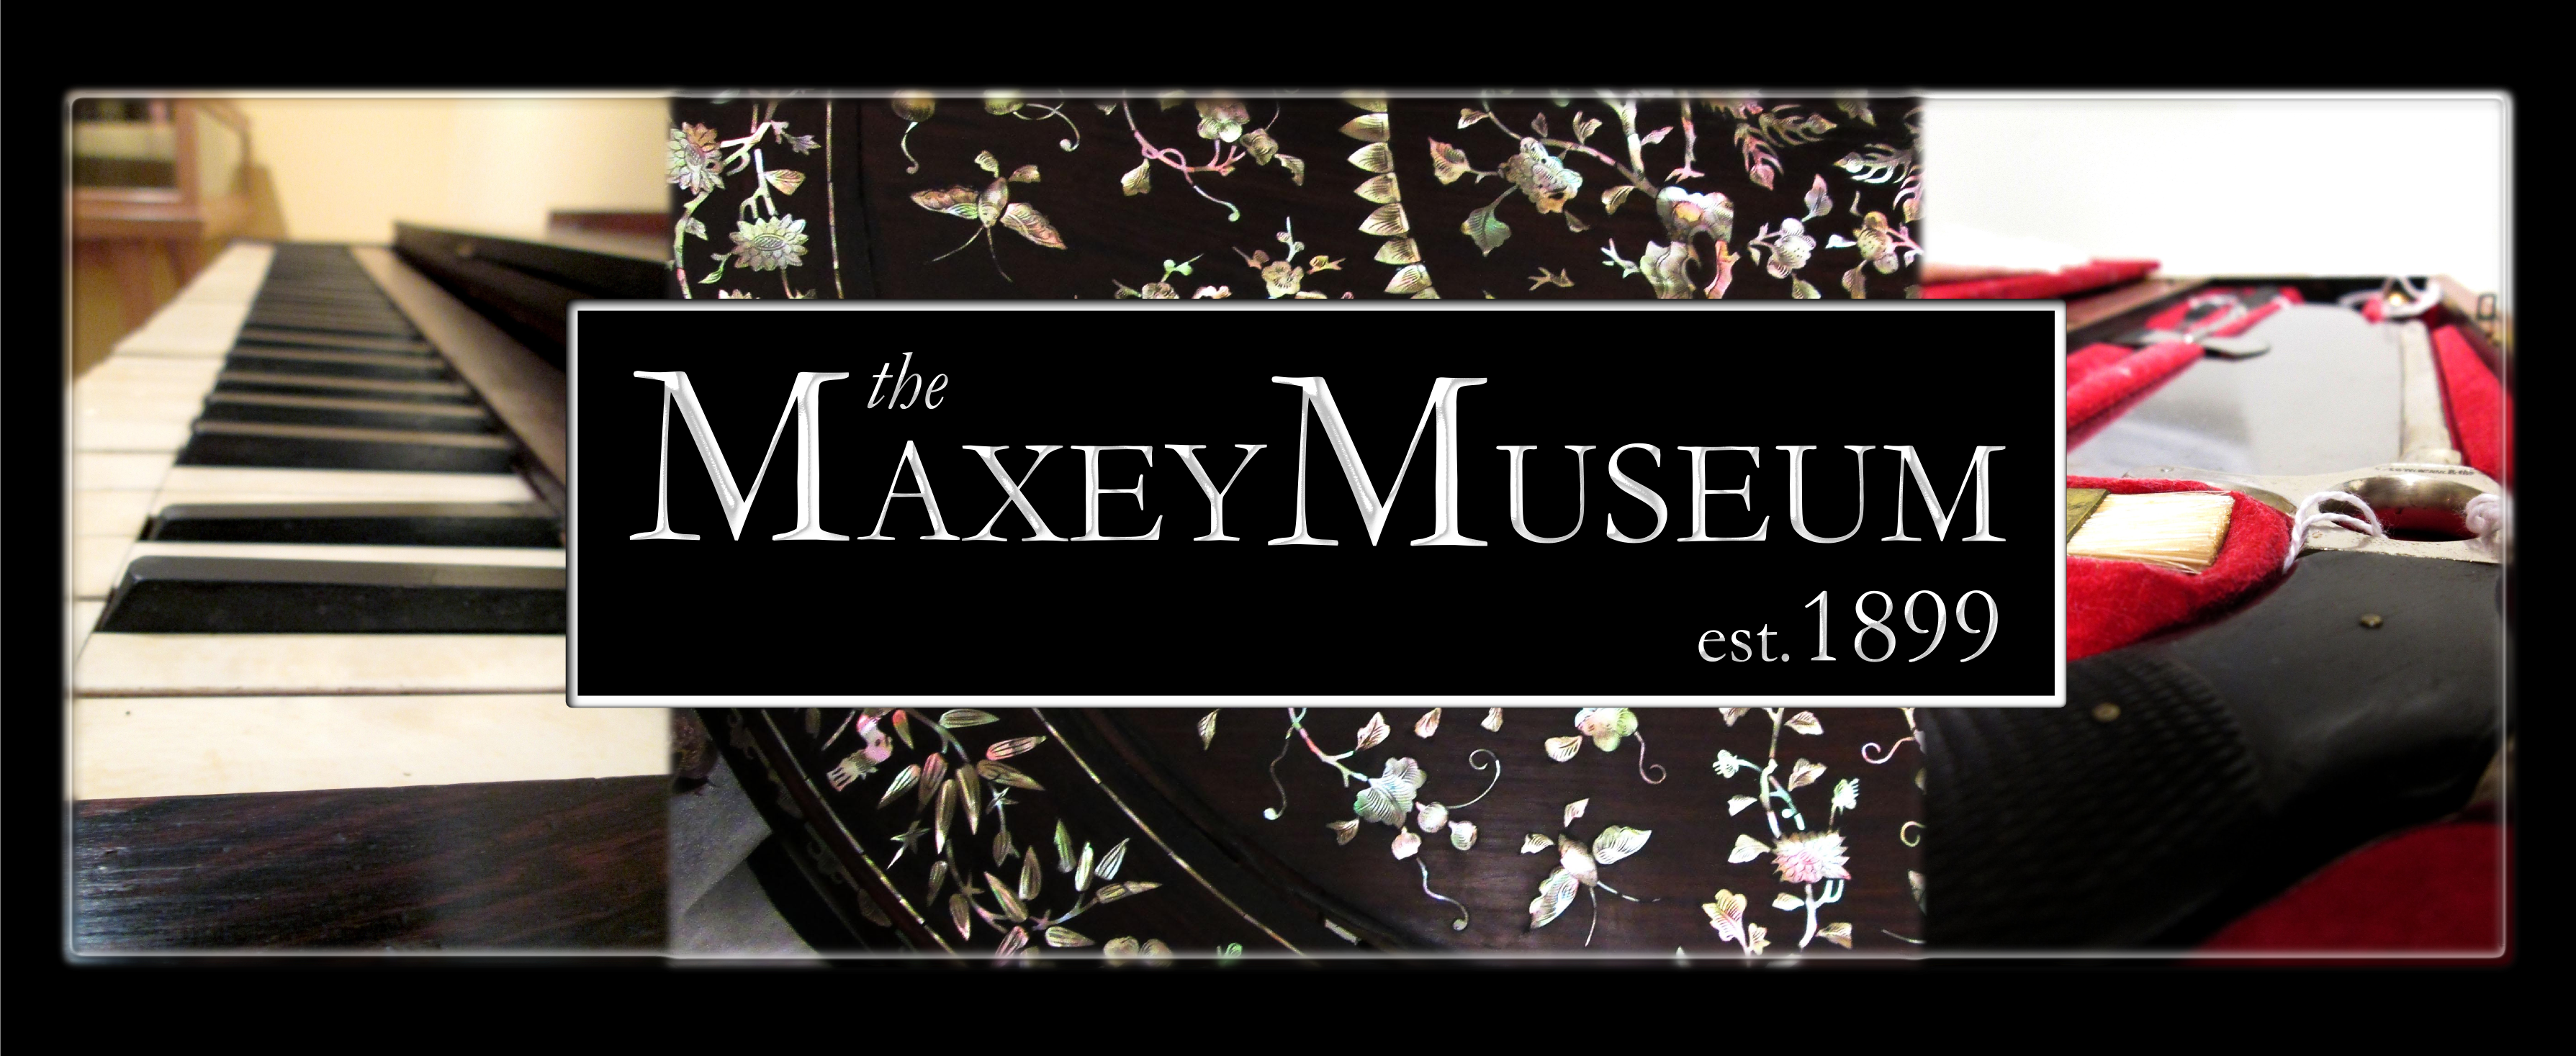 Maxey Museum Logo, depicts peiano keys, a black rug with a floral pattern, and the inner workings of a piano.